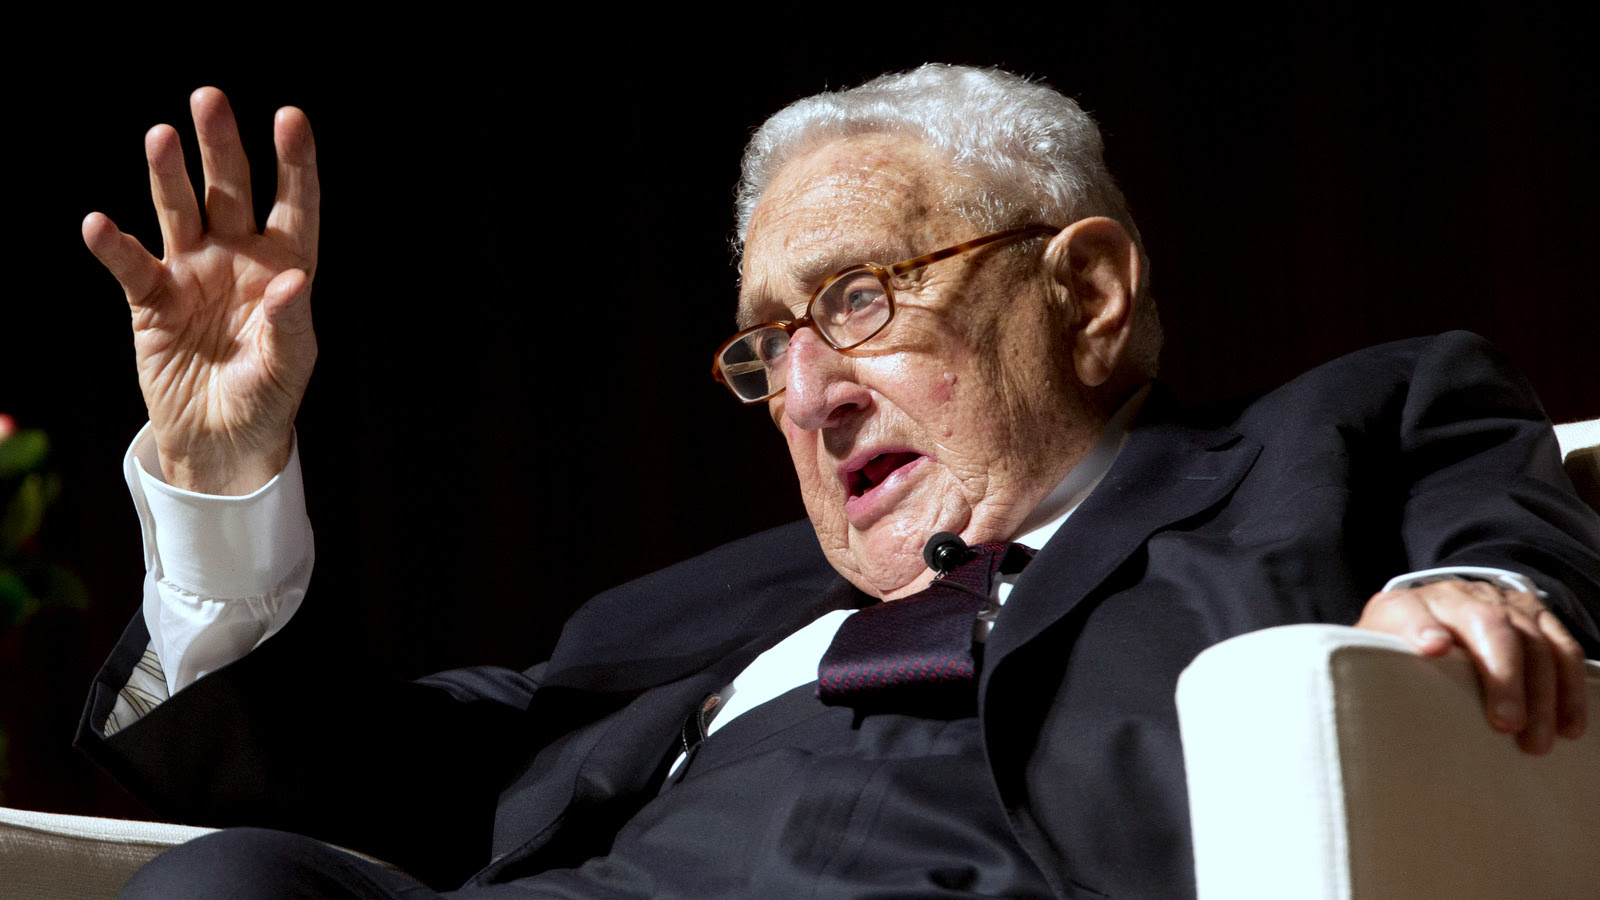 Former Secretary of State and former National Security Advisor Henry Kissinger speaks at the Vietnam War Summit at the LBJ Presidential Library in Austin, Texas, Tuesday, April 26, 2016. (AP Photo/Nick Ut)